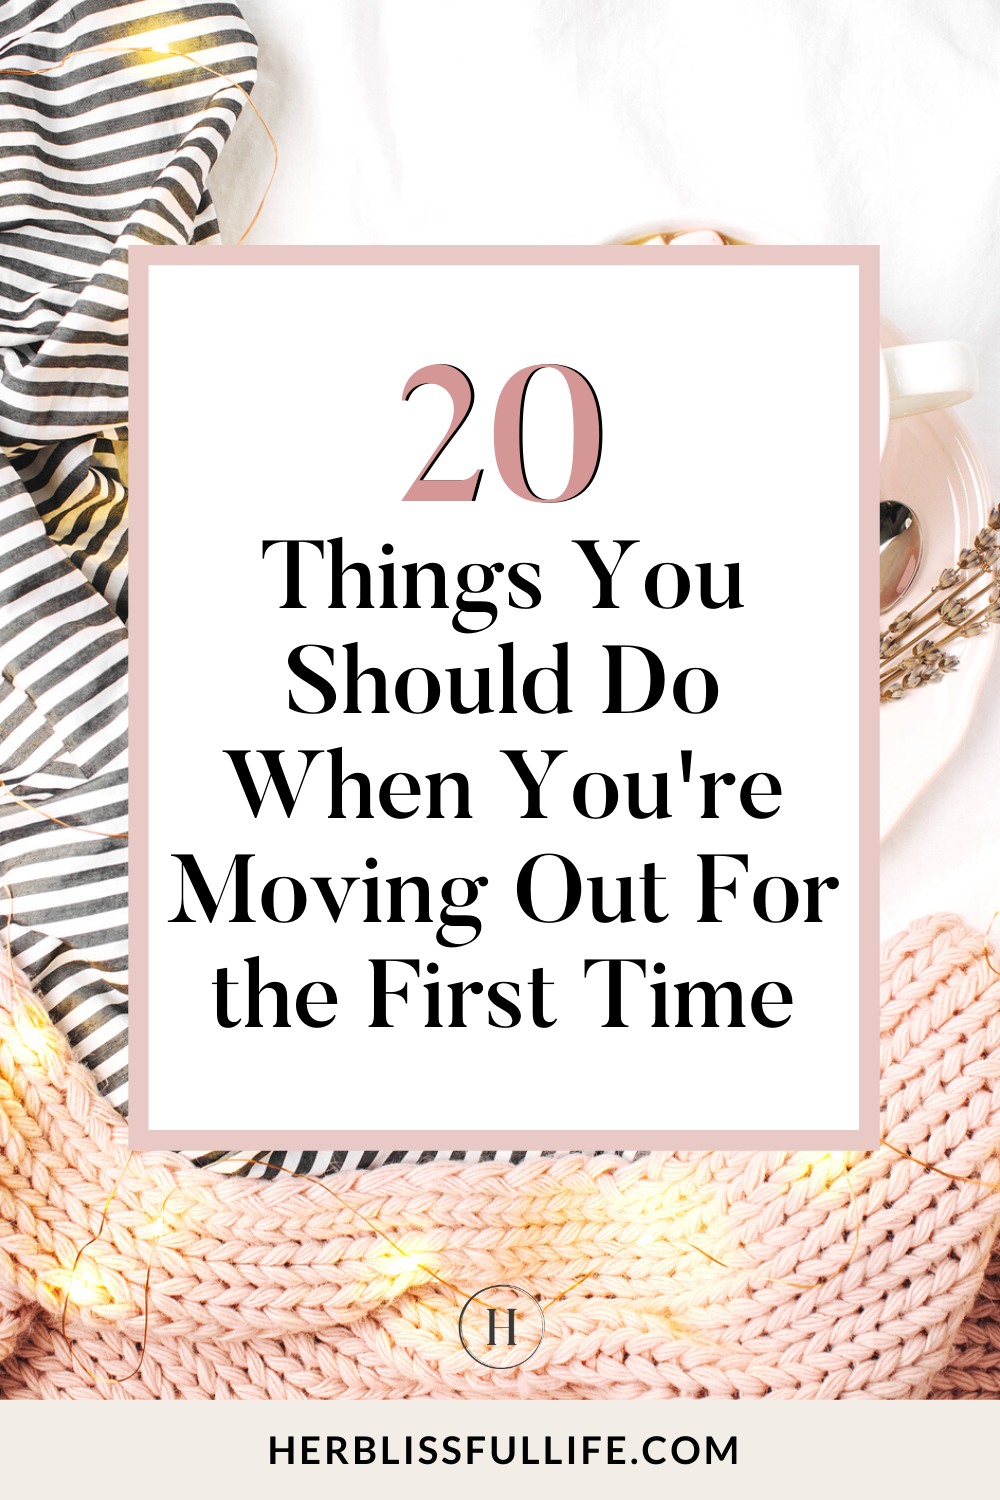 Need a checklist for moving out for the first time? We've got you covered! Here's everything you need to do before your big move! #movingout #apartmenthunting